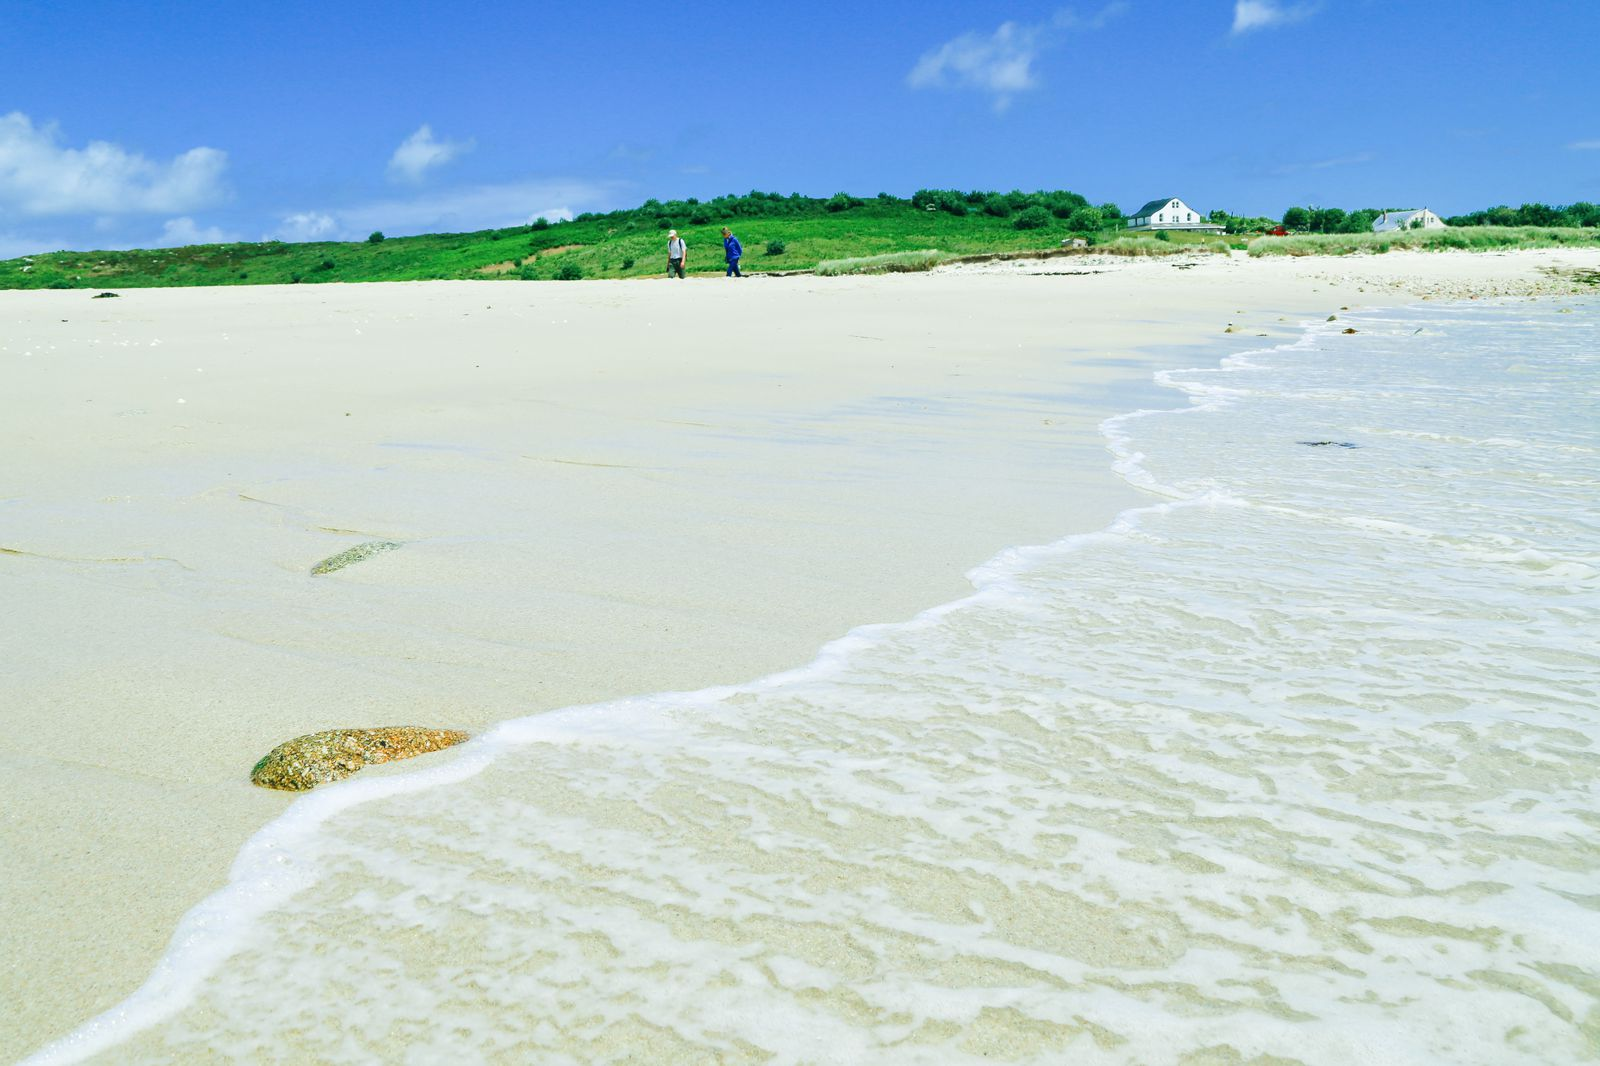 A 1 Week Travel Itinerary For Visiting The Isles Of Scilly